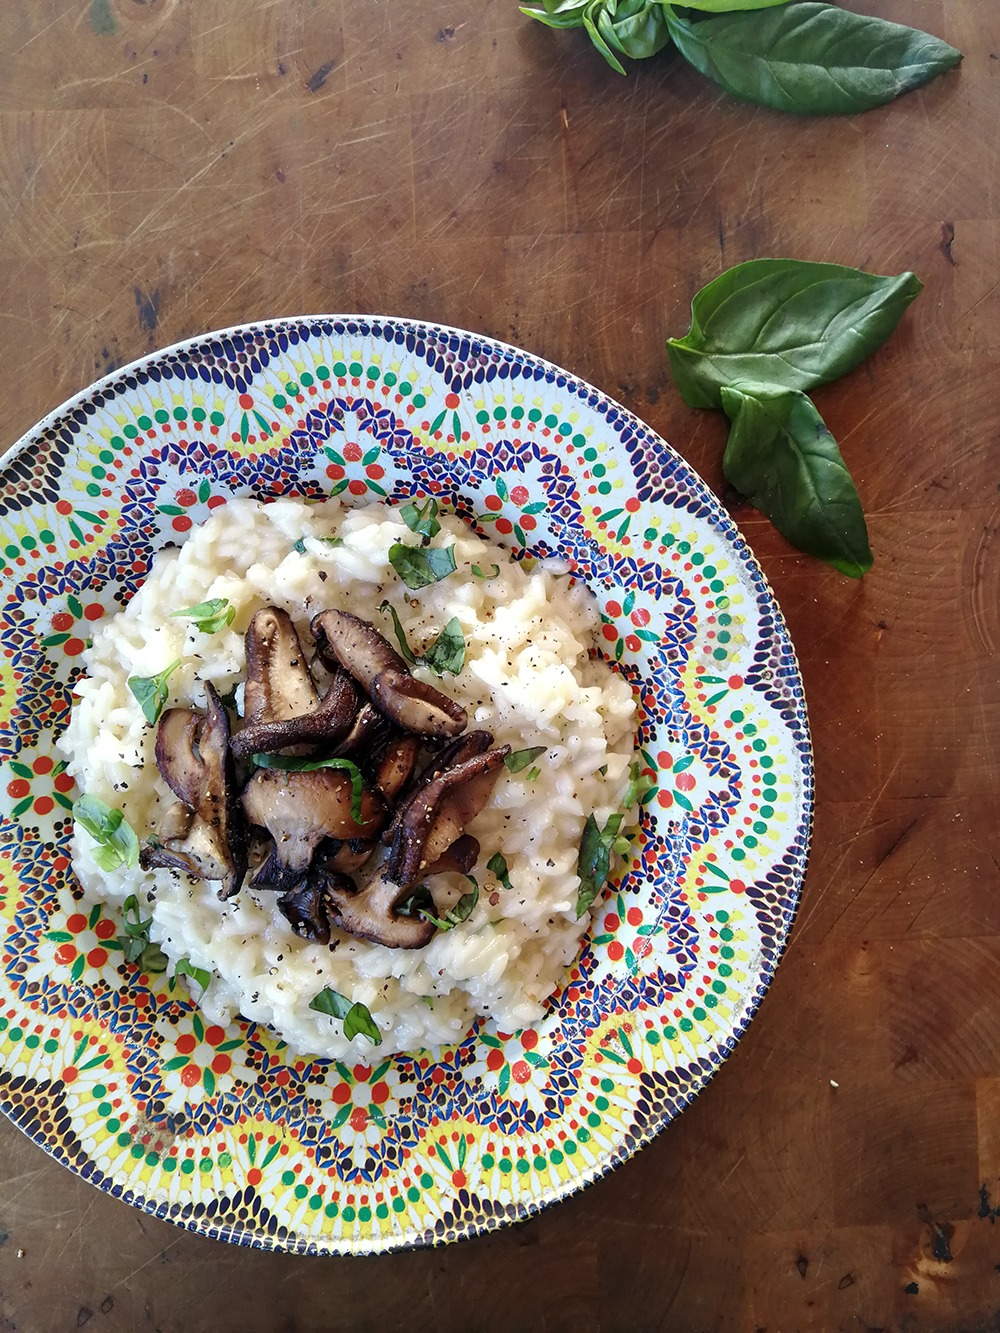 Jamie Oliver's Grilled Wild Mushroom Risotto with Basil